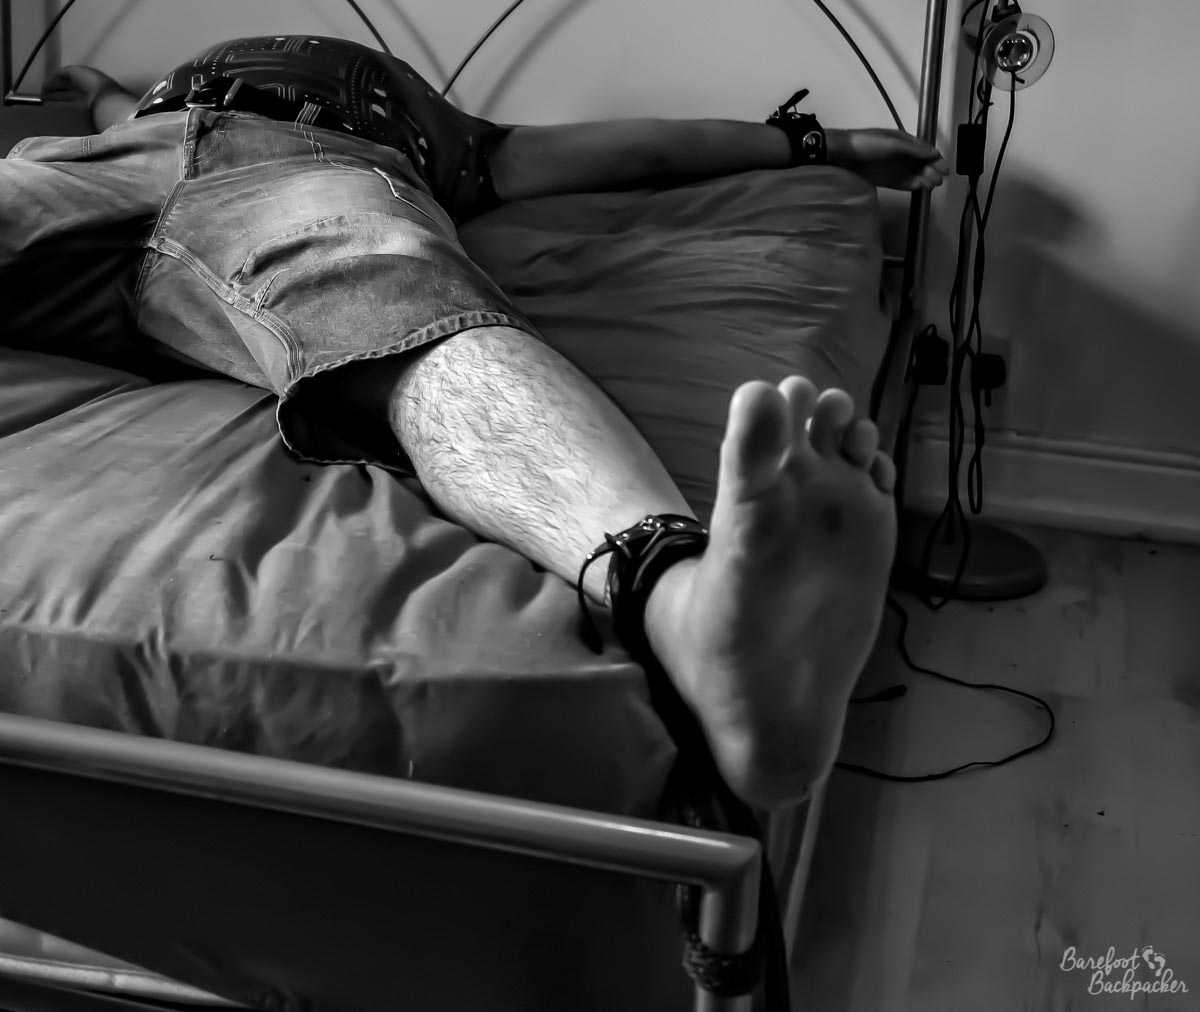 Man tied spread-eagled to a king-sized bed. He's wearing a t-shirt and long denim shorts, and is barefoot – his left foot is centred and focussed. The image is in black&white.